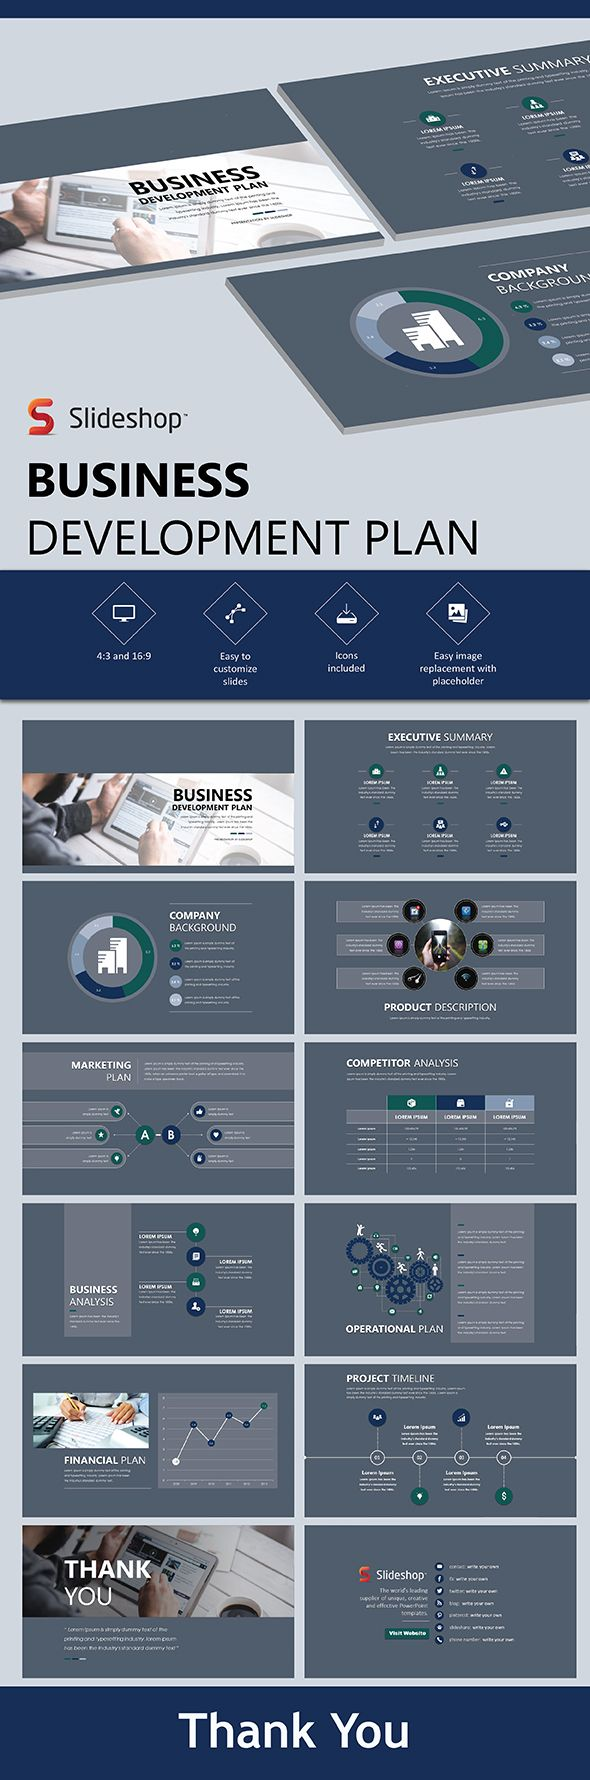 business development plan | business development plan, Powerpoint templates